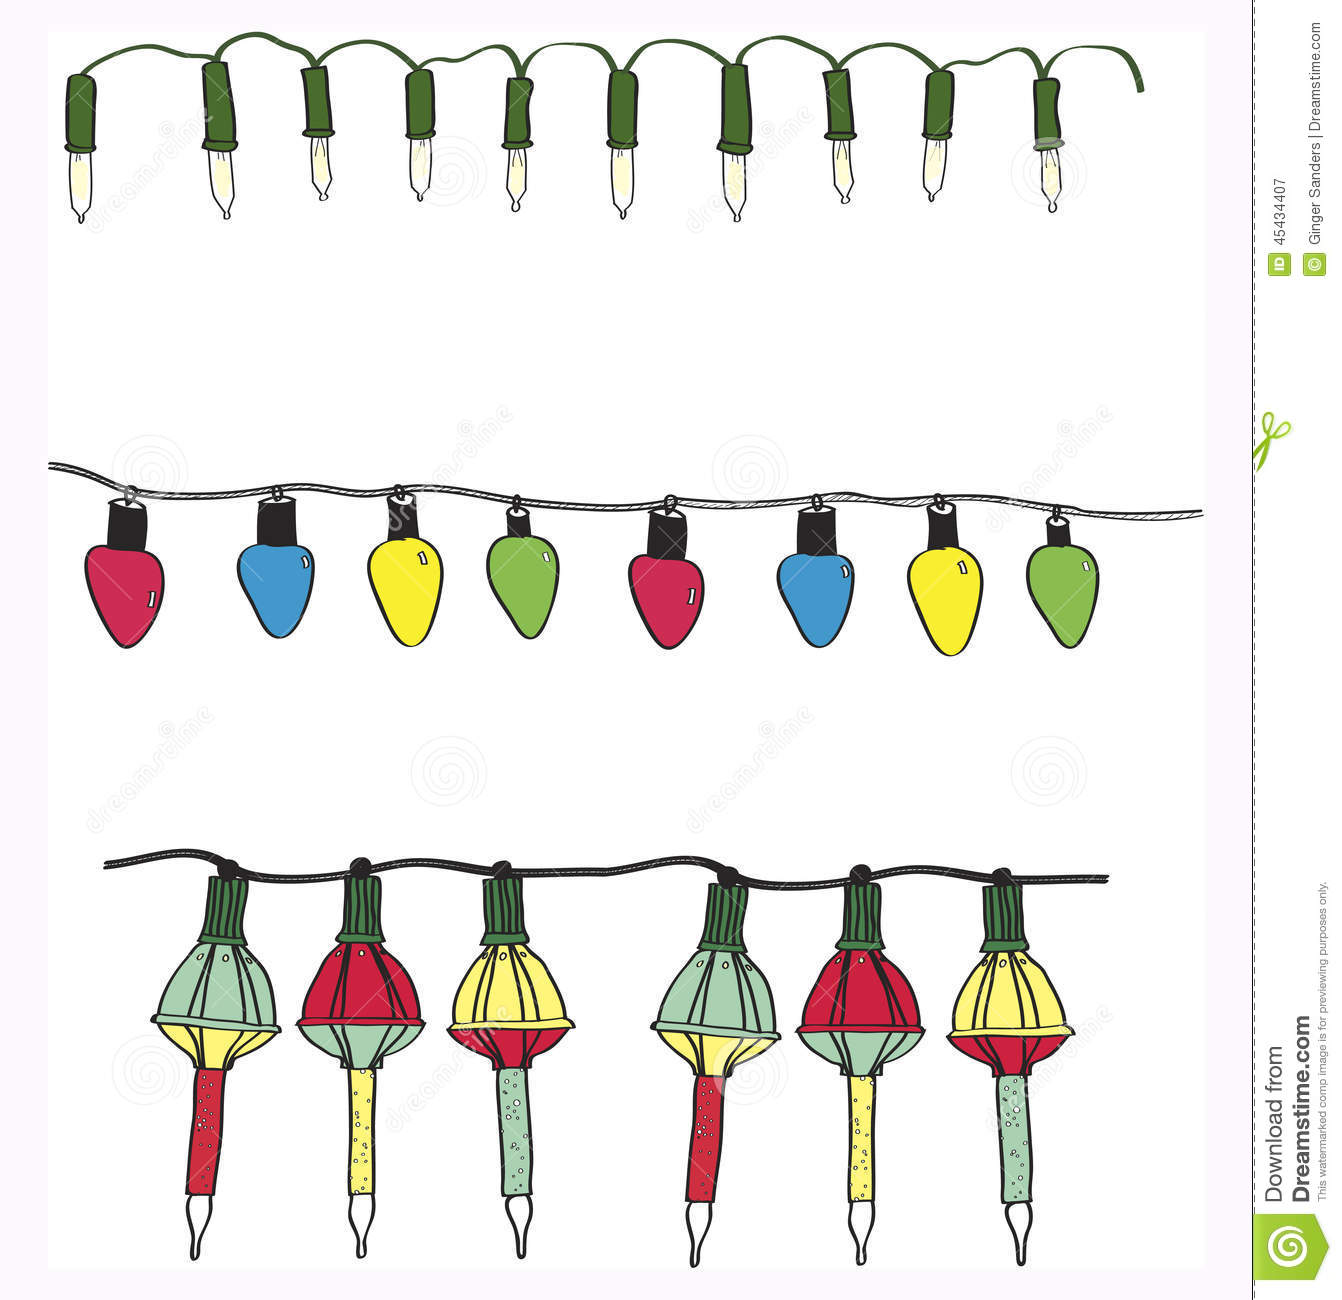 Hand Drawn Variety Electric Christmas Light Strings Vector